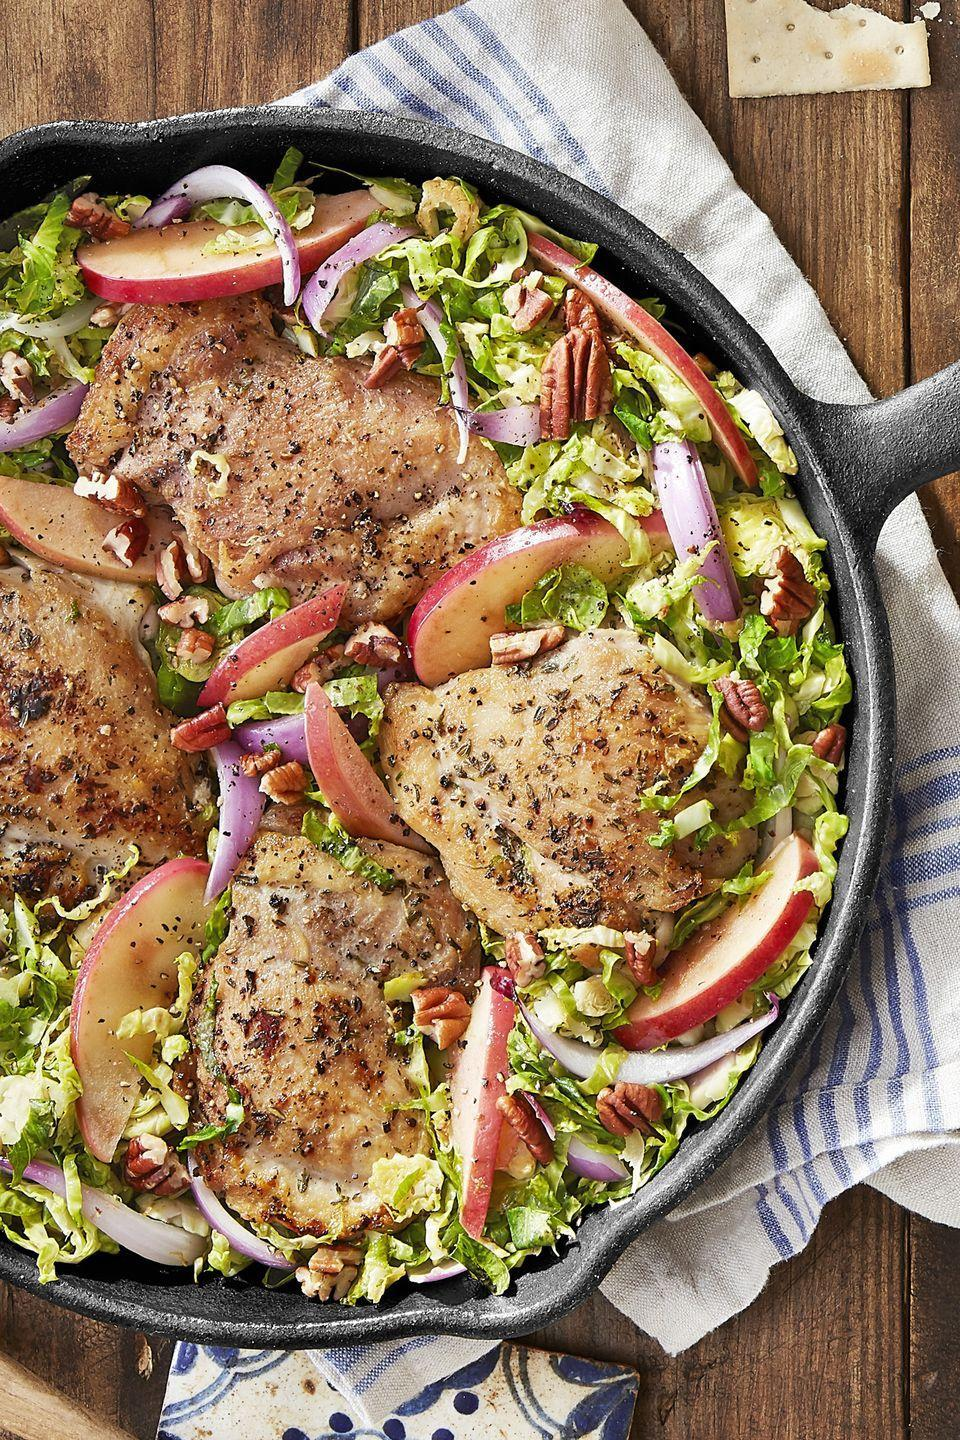 "<p>Sweeten skillet chicken with brown sugar and roasted apples.</p><p><strong><a href=""https://www.countryliving.com/food-drinks/recipes/a44233/skillet-chicken-brussels-sprouts-apples-recipe/"" rel=""nofollow noopener"" target=""_blank"" data-ylk=""slk:Get the recipe"" class=""link rapid-noclick-resp"">Get the recipe</a>.</strong><br></p><p><a class=""link rapid-noclick-resp"" href=""https://www.amazon.com/KitchenAid-Nylon-Slotted-Spoon-Black/dp/B005D6G2RG?tag=syn-yahoo-20&ascsubtag=%5Bartid%7C10050.g.648%5Bsrc%7Cyahoo-us"" rel=""nofollow noopener"" target=""_blank"" data-ylk=""slk:SHOP SLOTTED SPOONS"">SHOP SLOTTED SPOONS</a></p>"